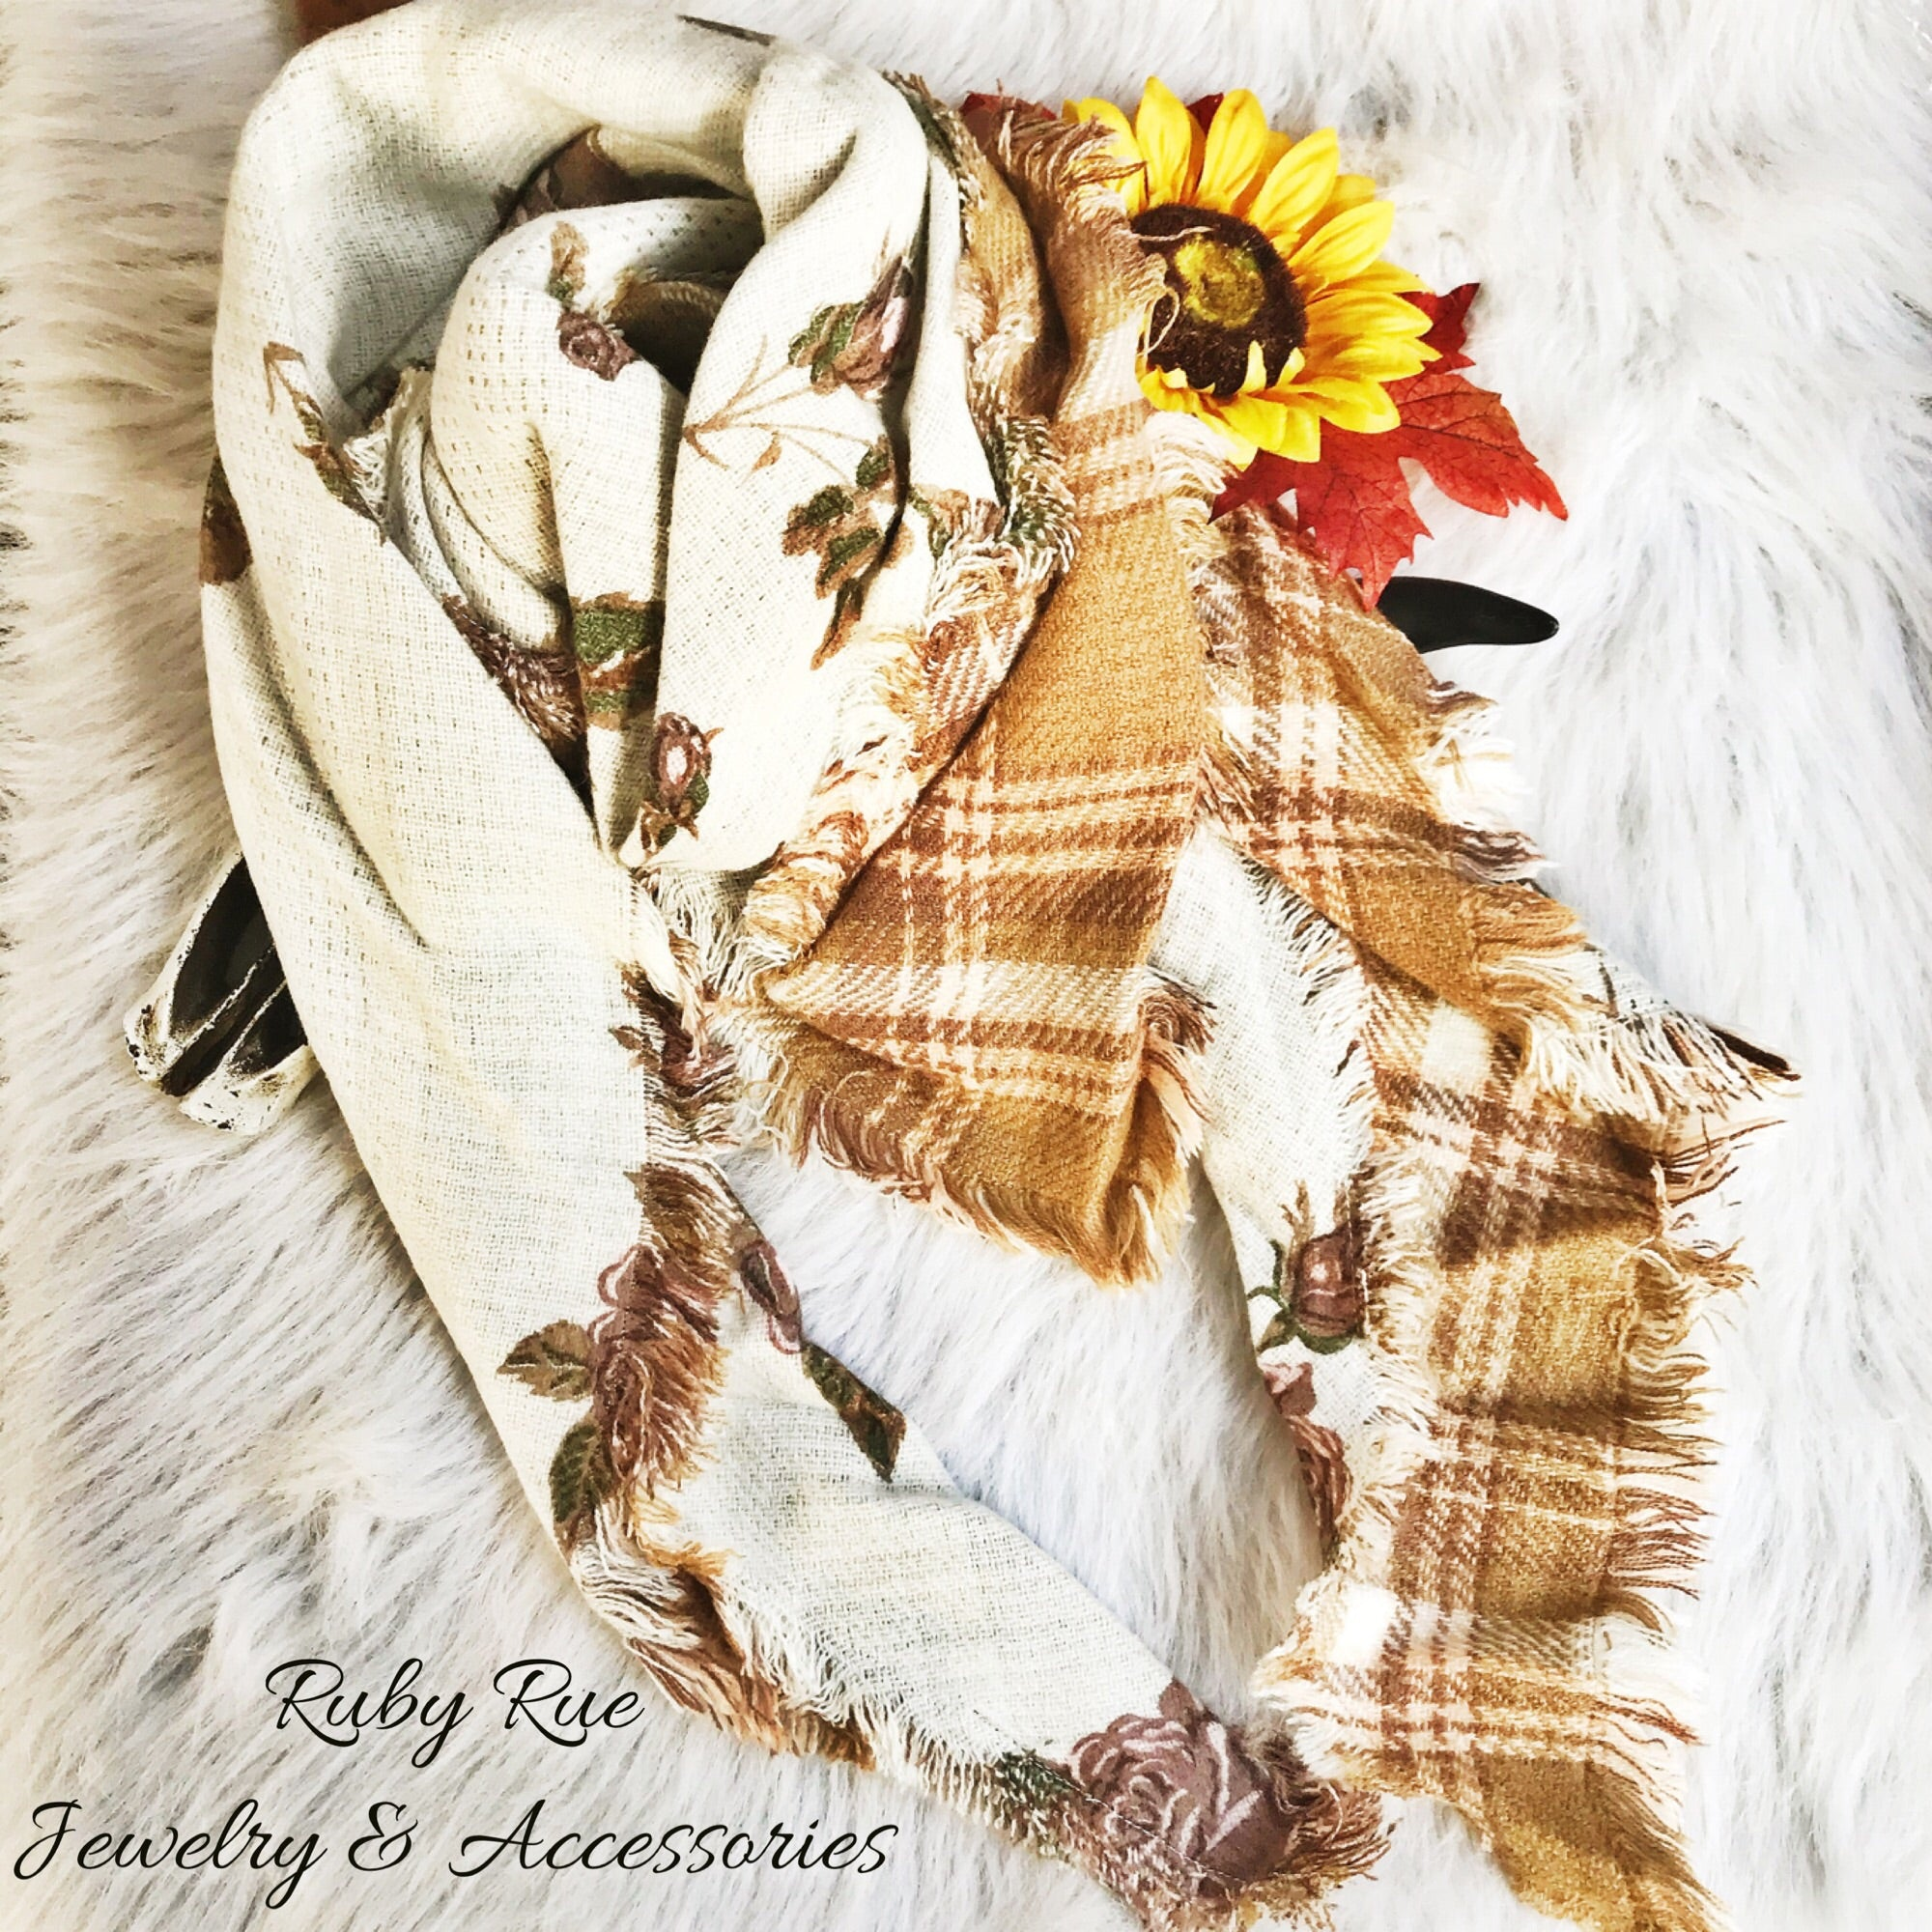 Taupe Reversible Scarf - Ruby Rue Jewelry & Accessories